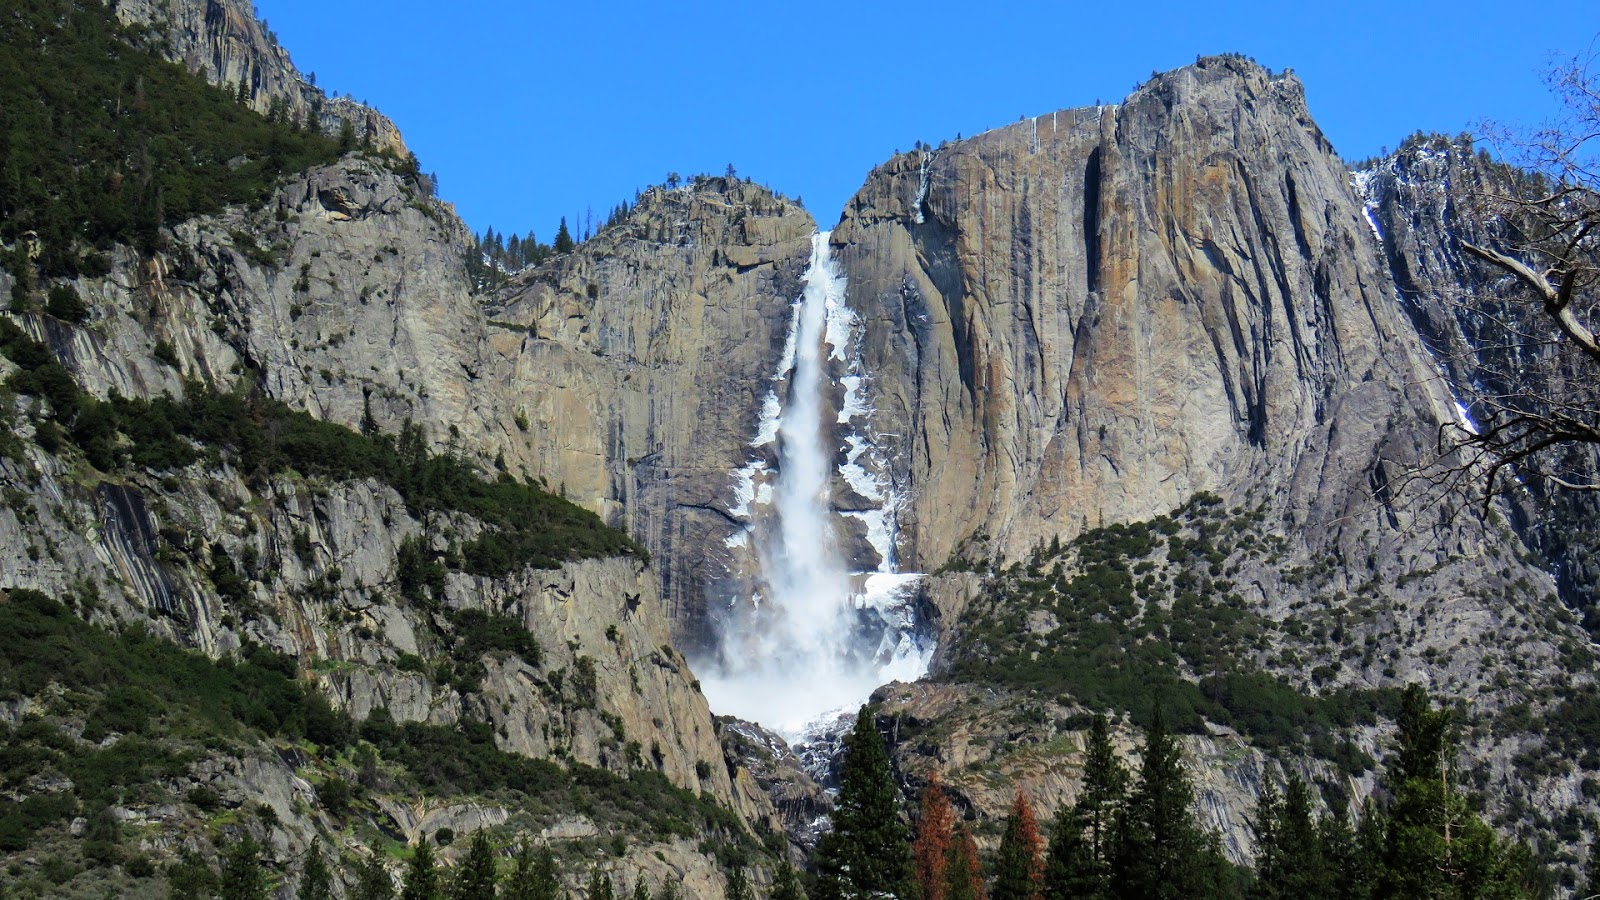 yosemite mature singles Our many group adventures provide an exciting new holiday opportunity for single travellers looking to meet other like-minded people travelling solo on a tour.